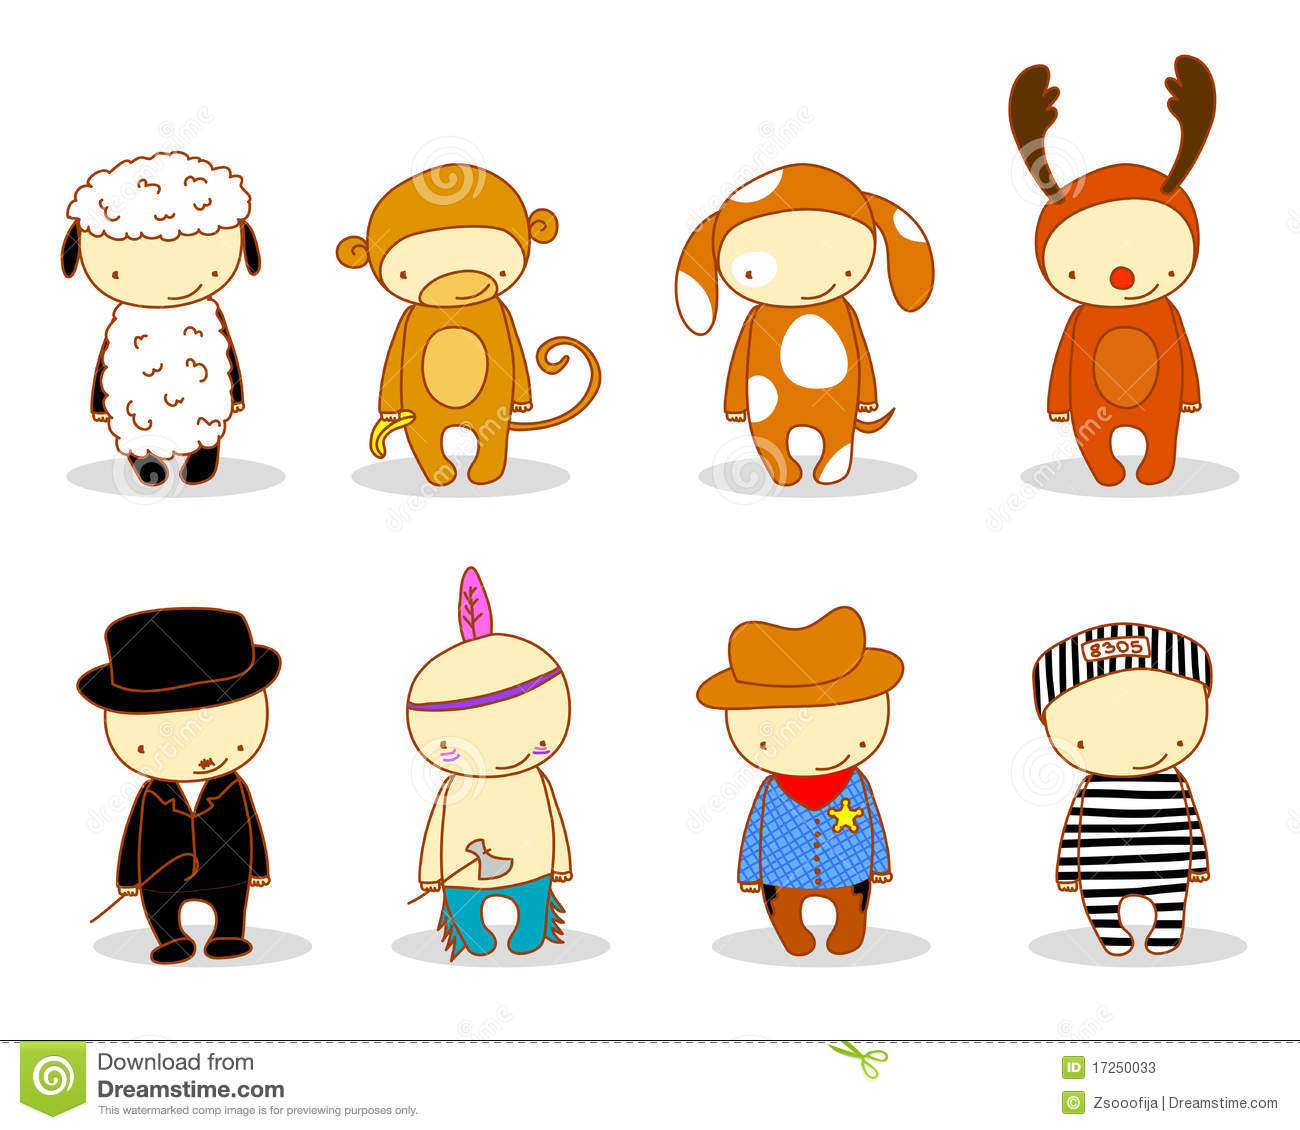 Kids with costumes clipart banner free stock Cute Costume Clipart - Clipart Kid banner free stock